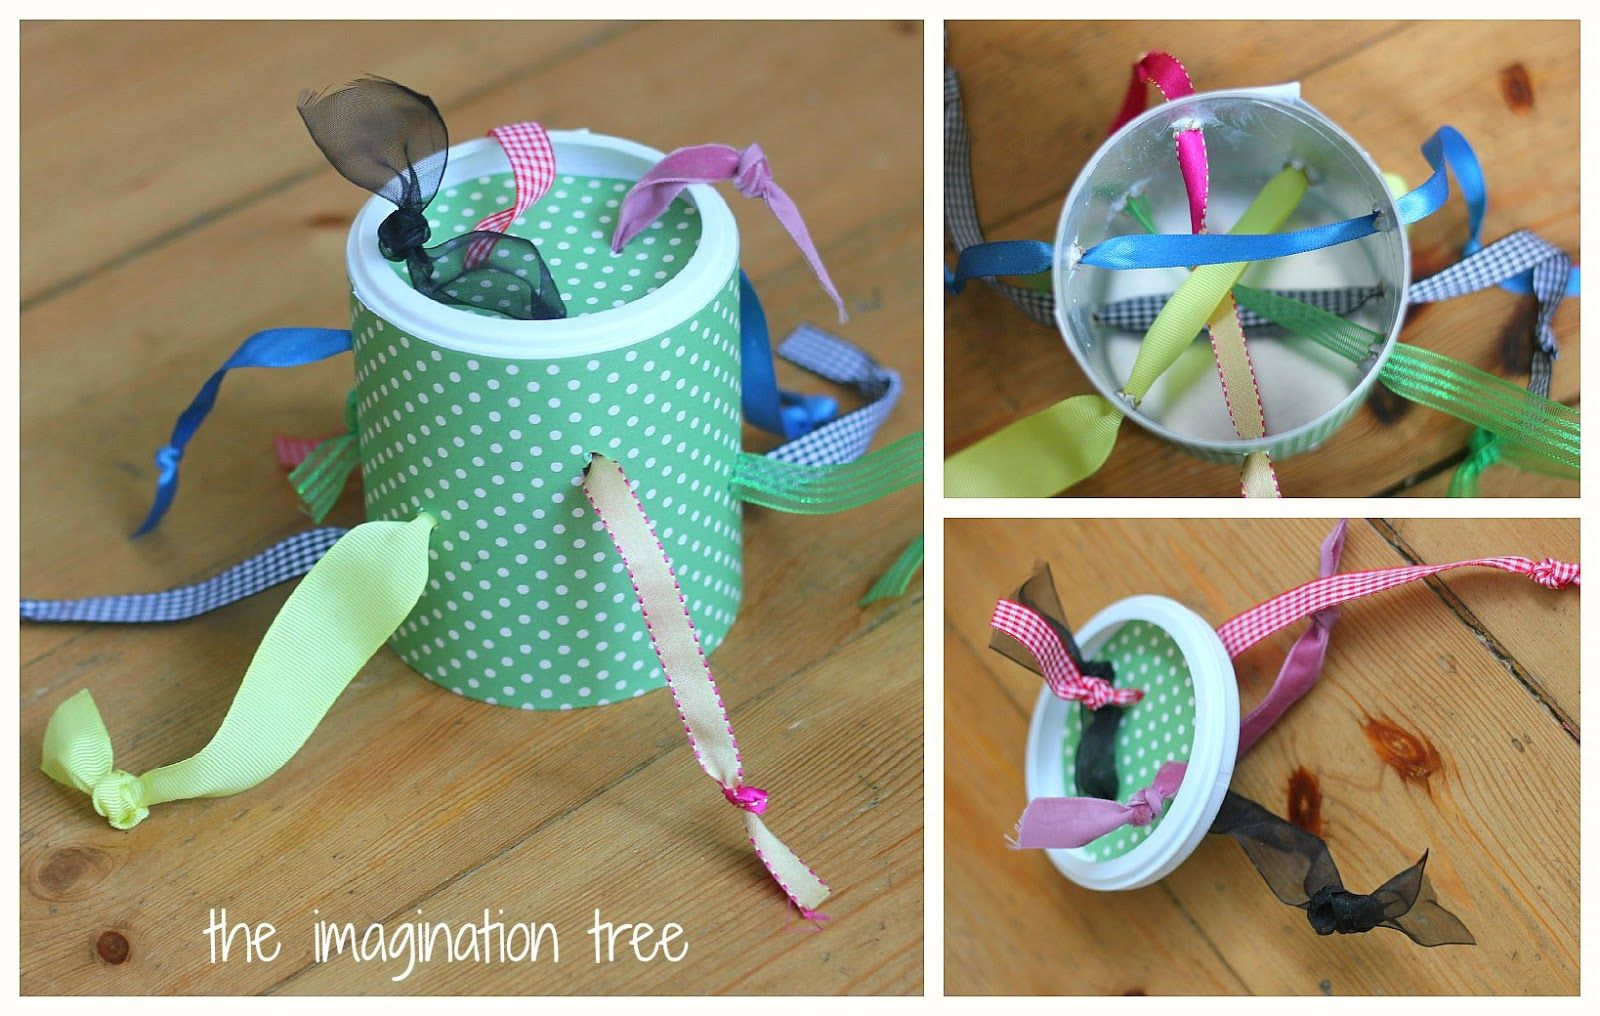 4 DIY Baby and Toddler Toys for Motor Skills - The Imagination Tree 703527faddd4